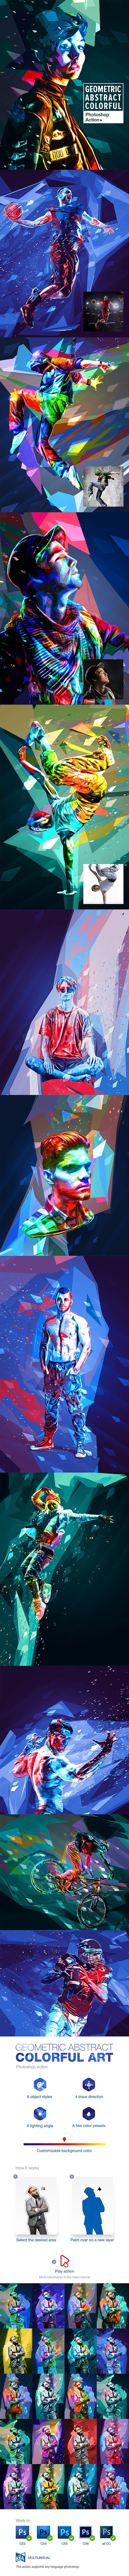 Geometric abstract colorful art photoshop action low poly adobe photoshop baditri Images